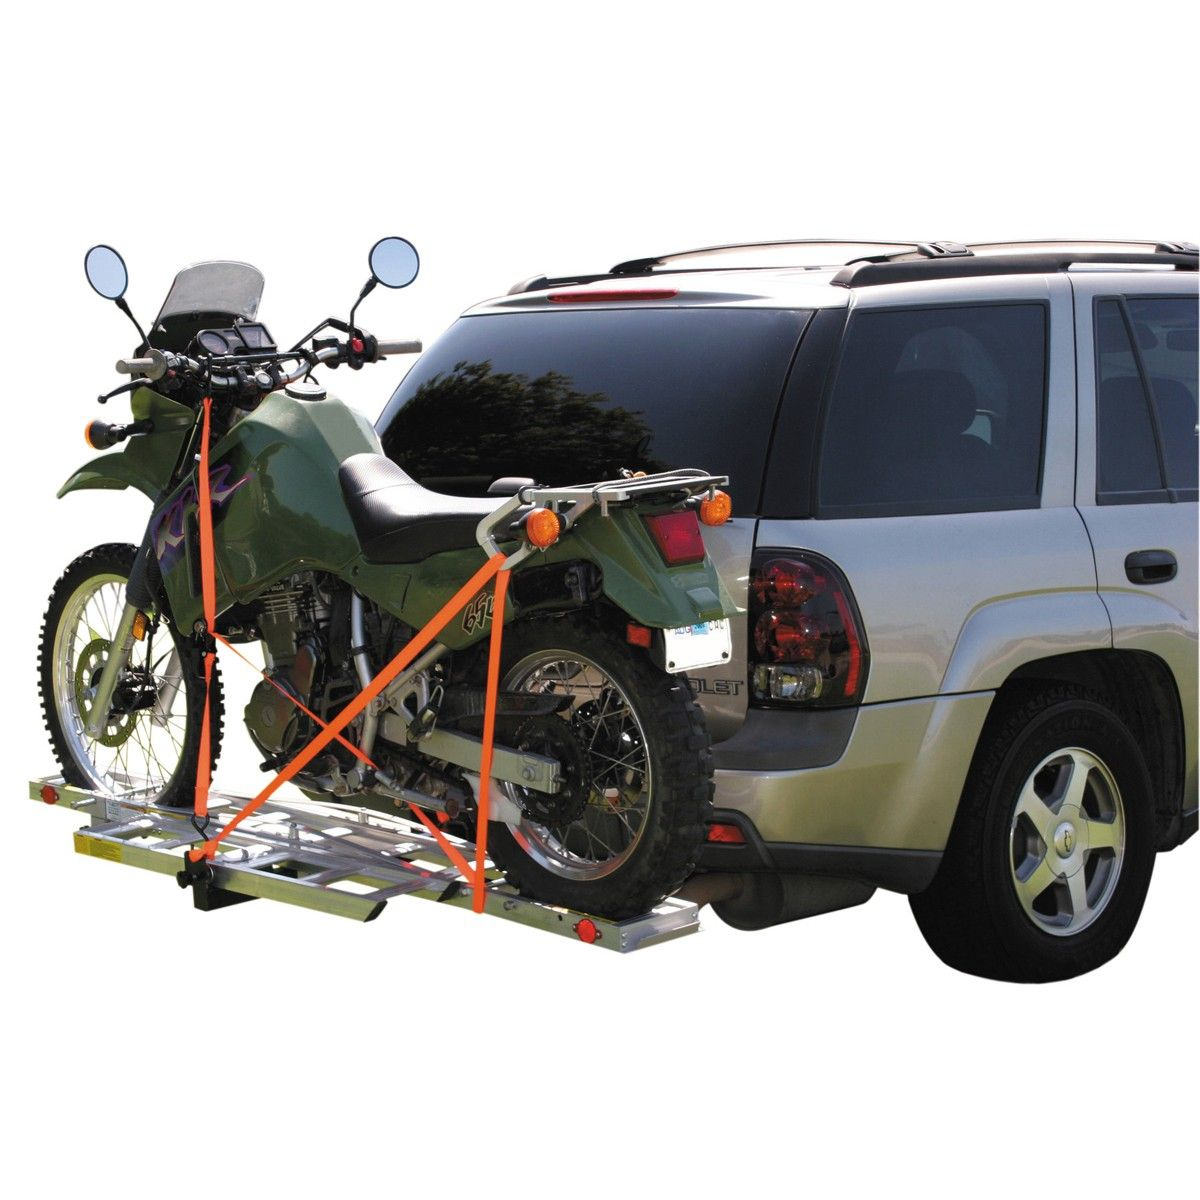 400 lb. ReceiverMount Motorcycle Carrier Moto bike